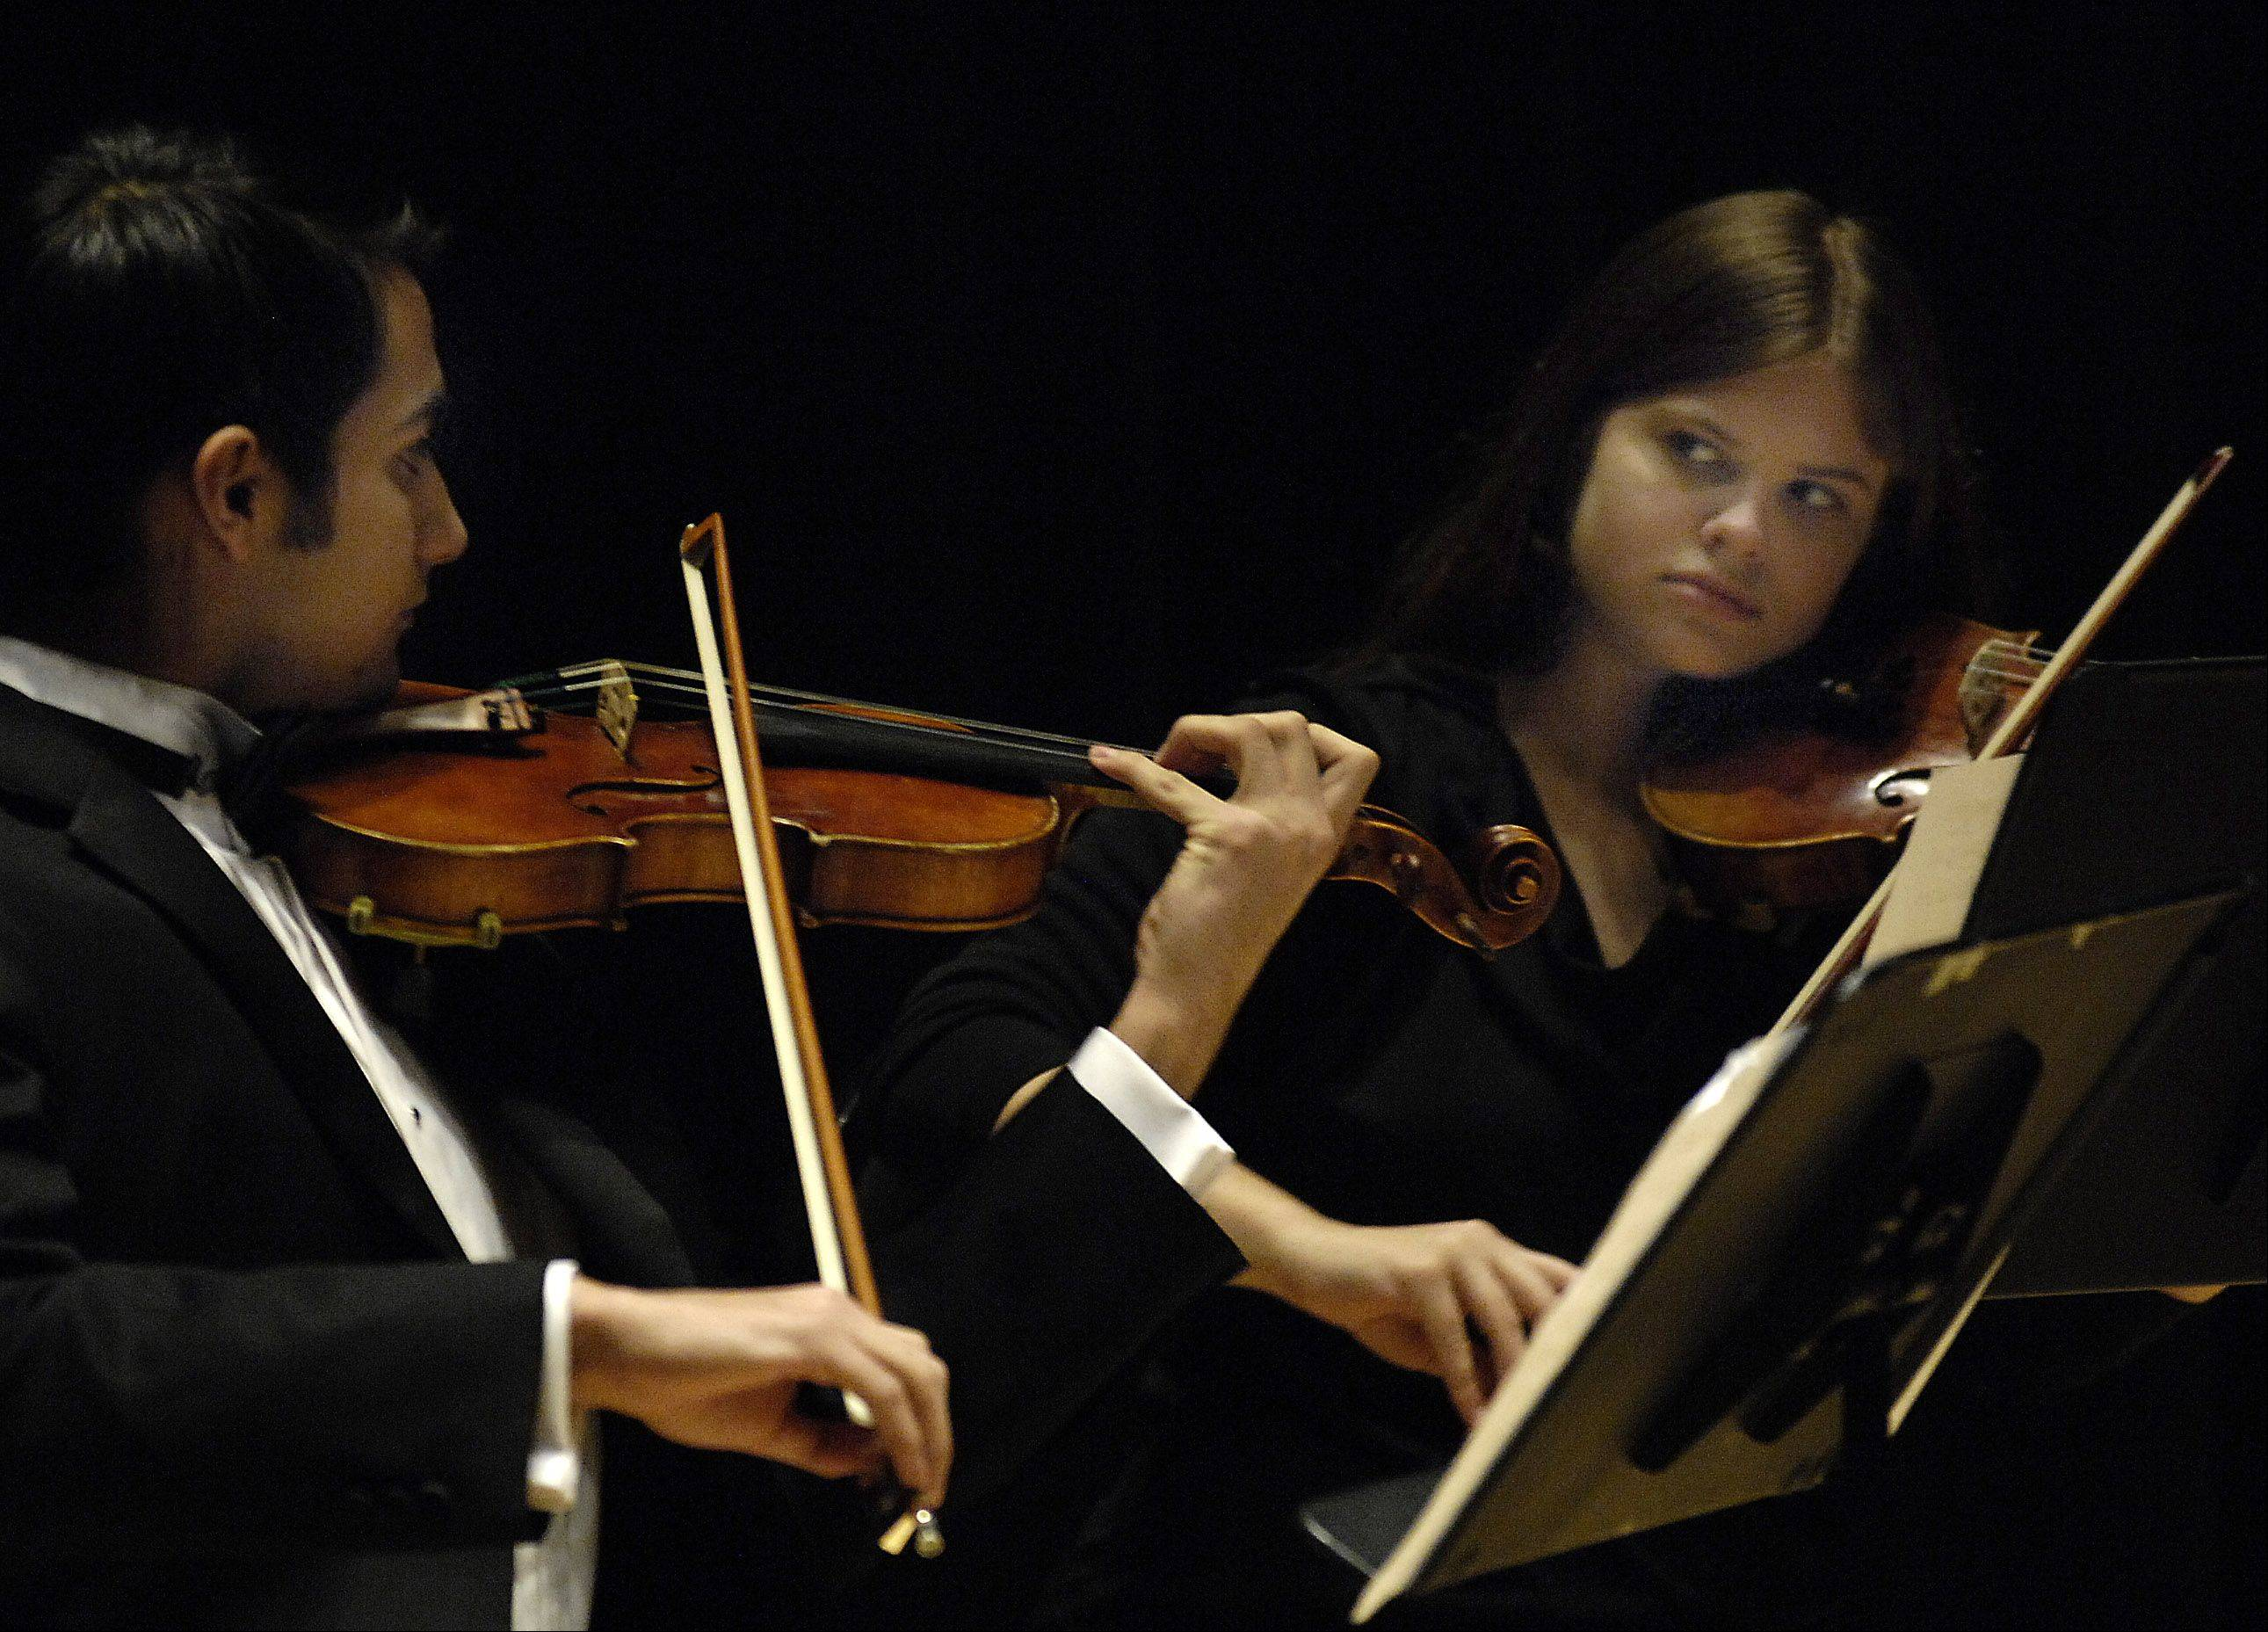 From left, Michael Arias and Julia Heeren perform during a previous Elgin Youth Symphony Orchestras concert. This Sunday, Nov. 18, EYSO musicians will perform free Chamber Music Institute Concerts at Elgin Community College.